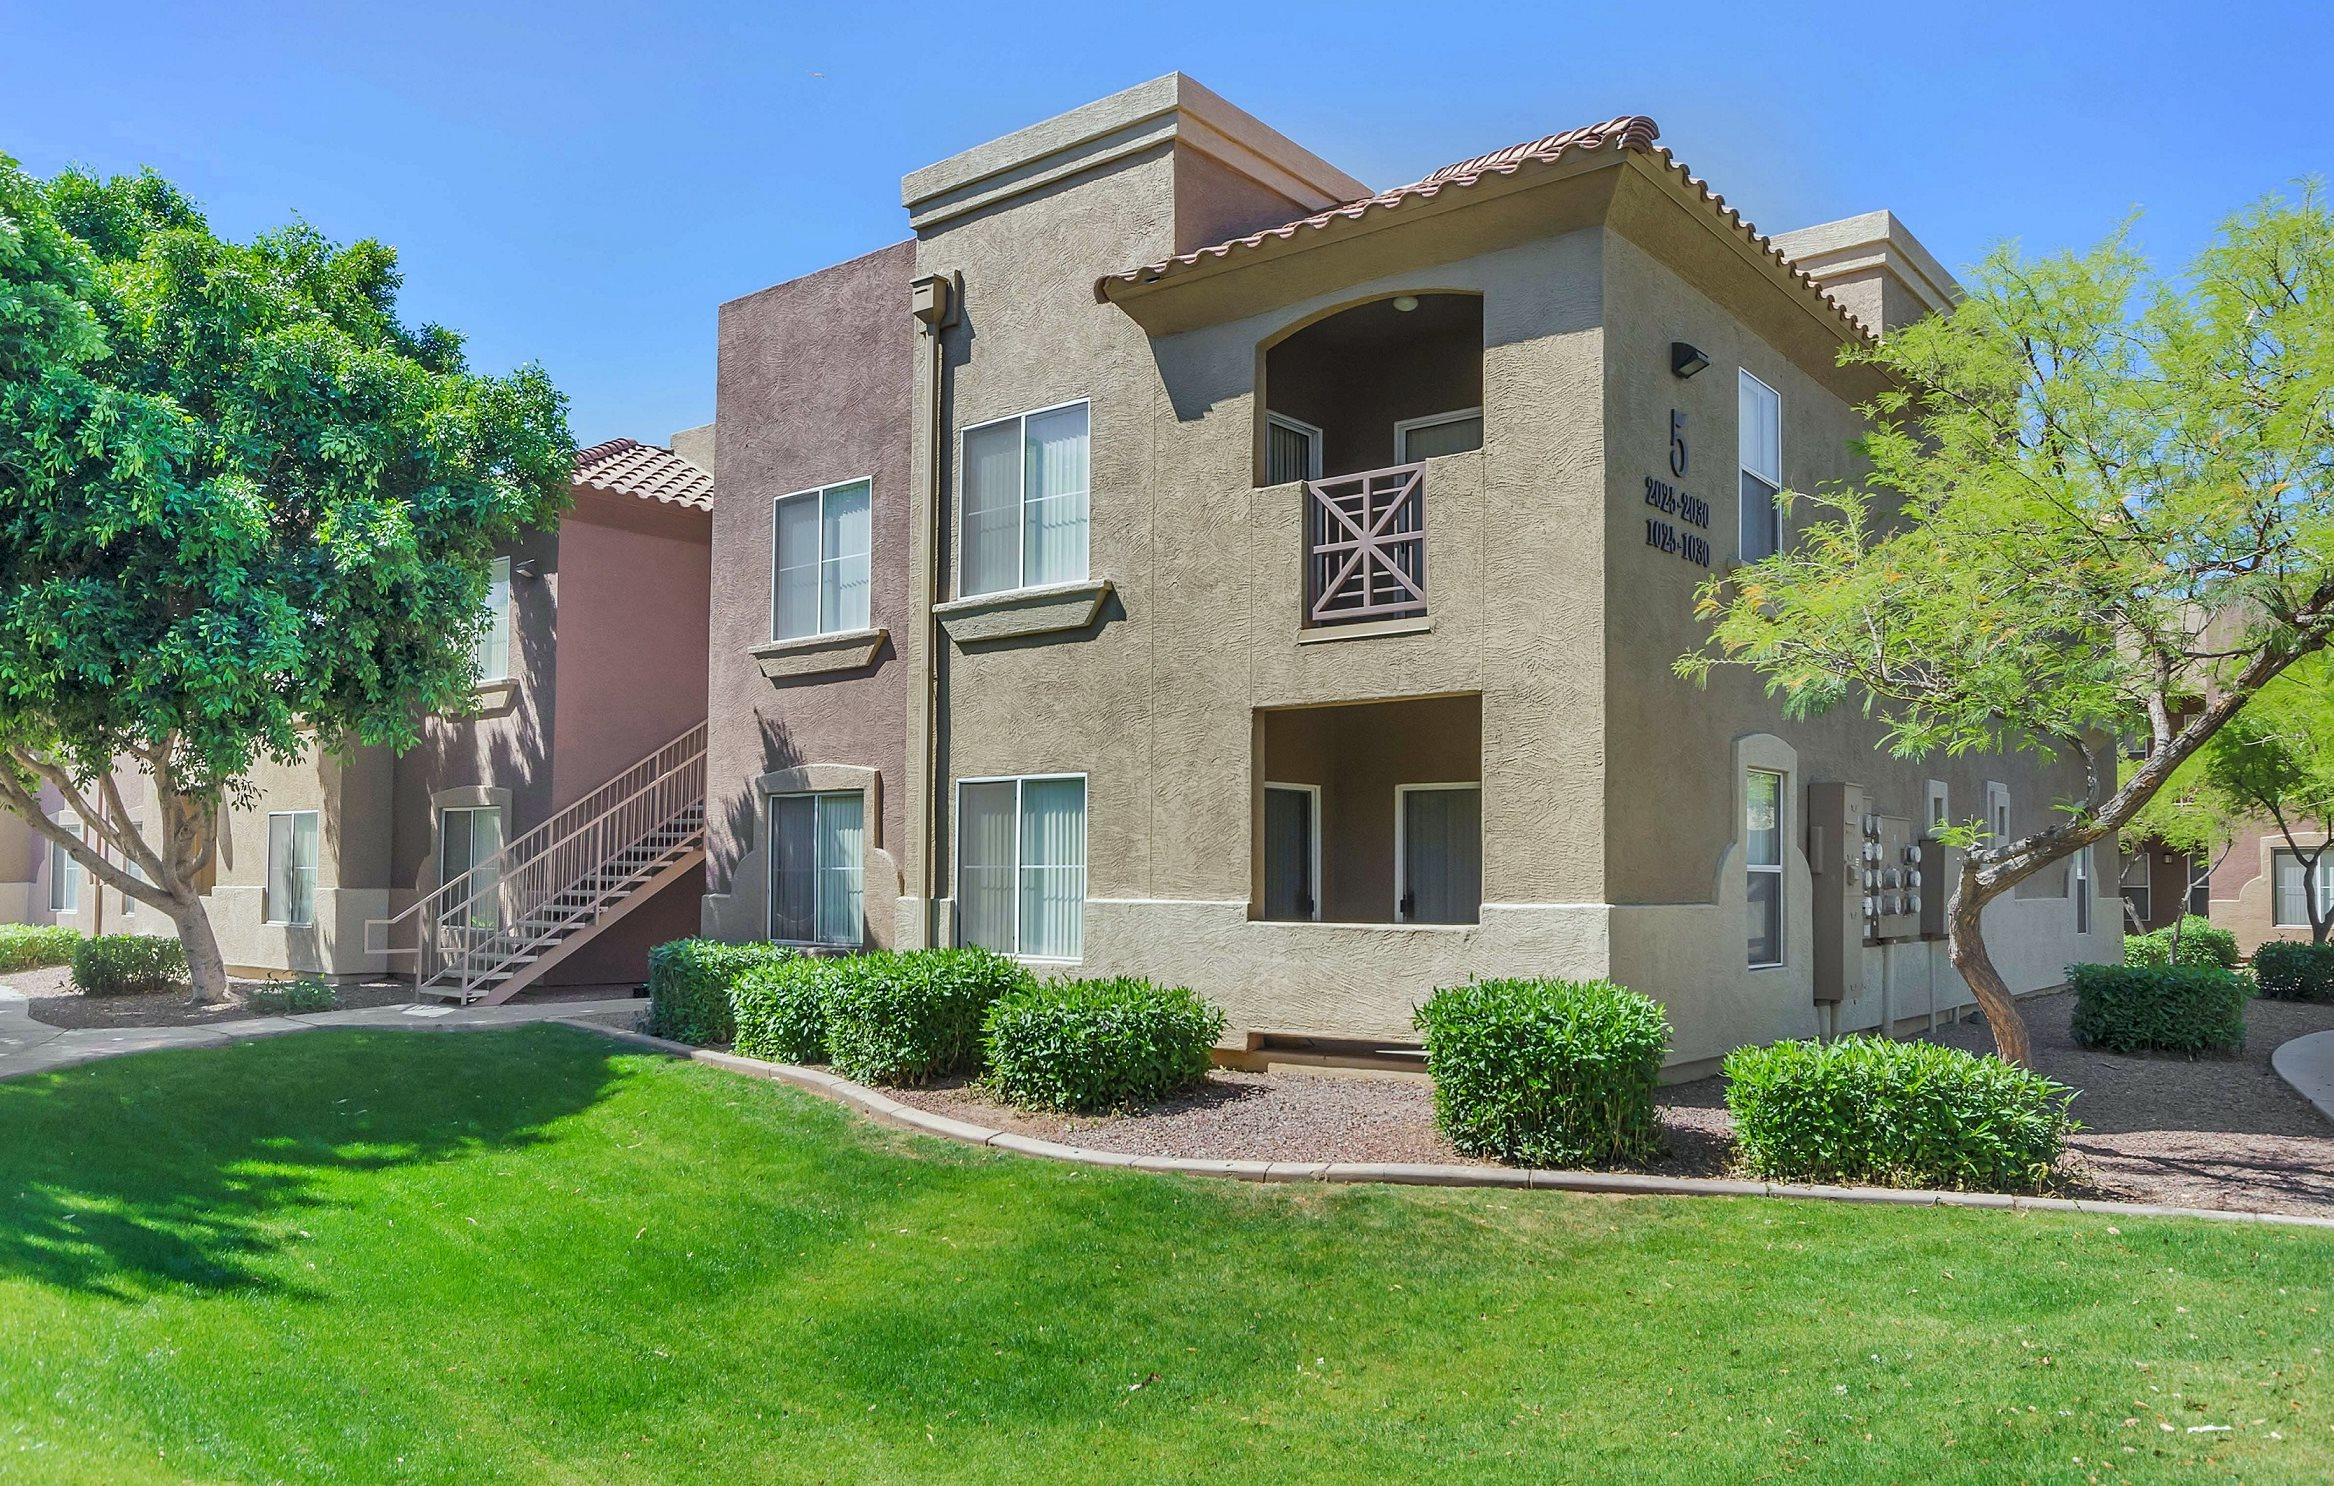 Low income apartments for rent in show az latest bestapartment 2018 for Cheap 1 bedroom apartments in glendale az